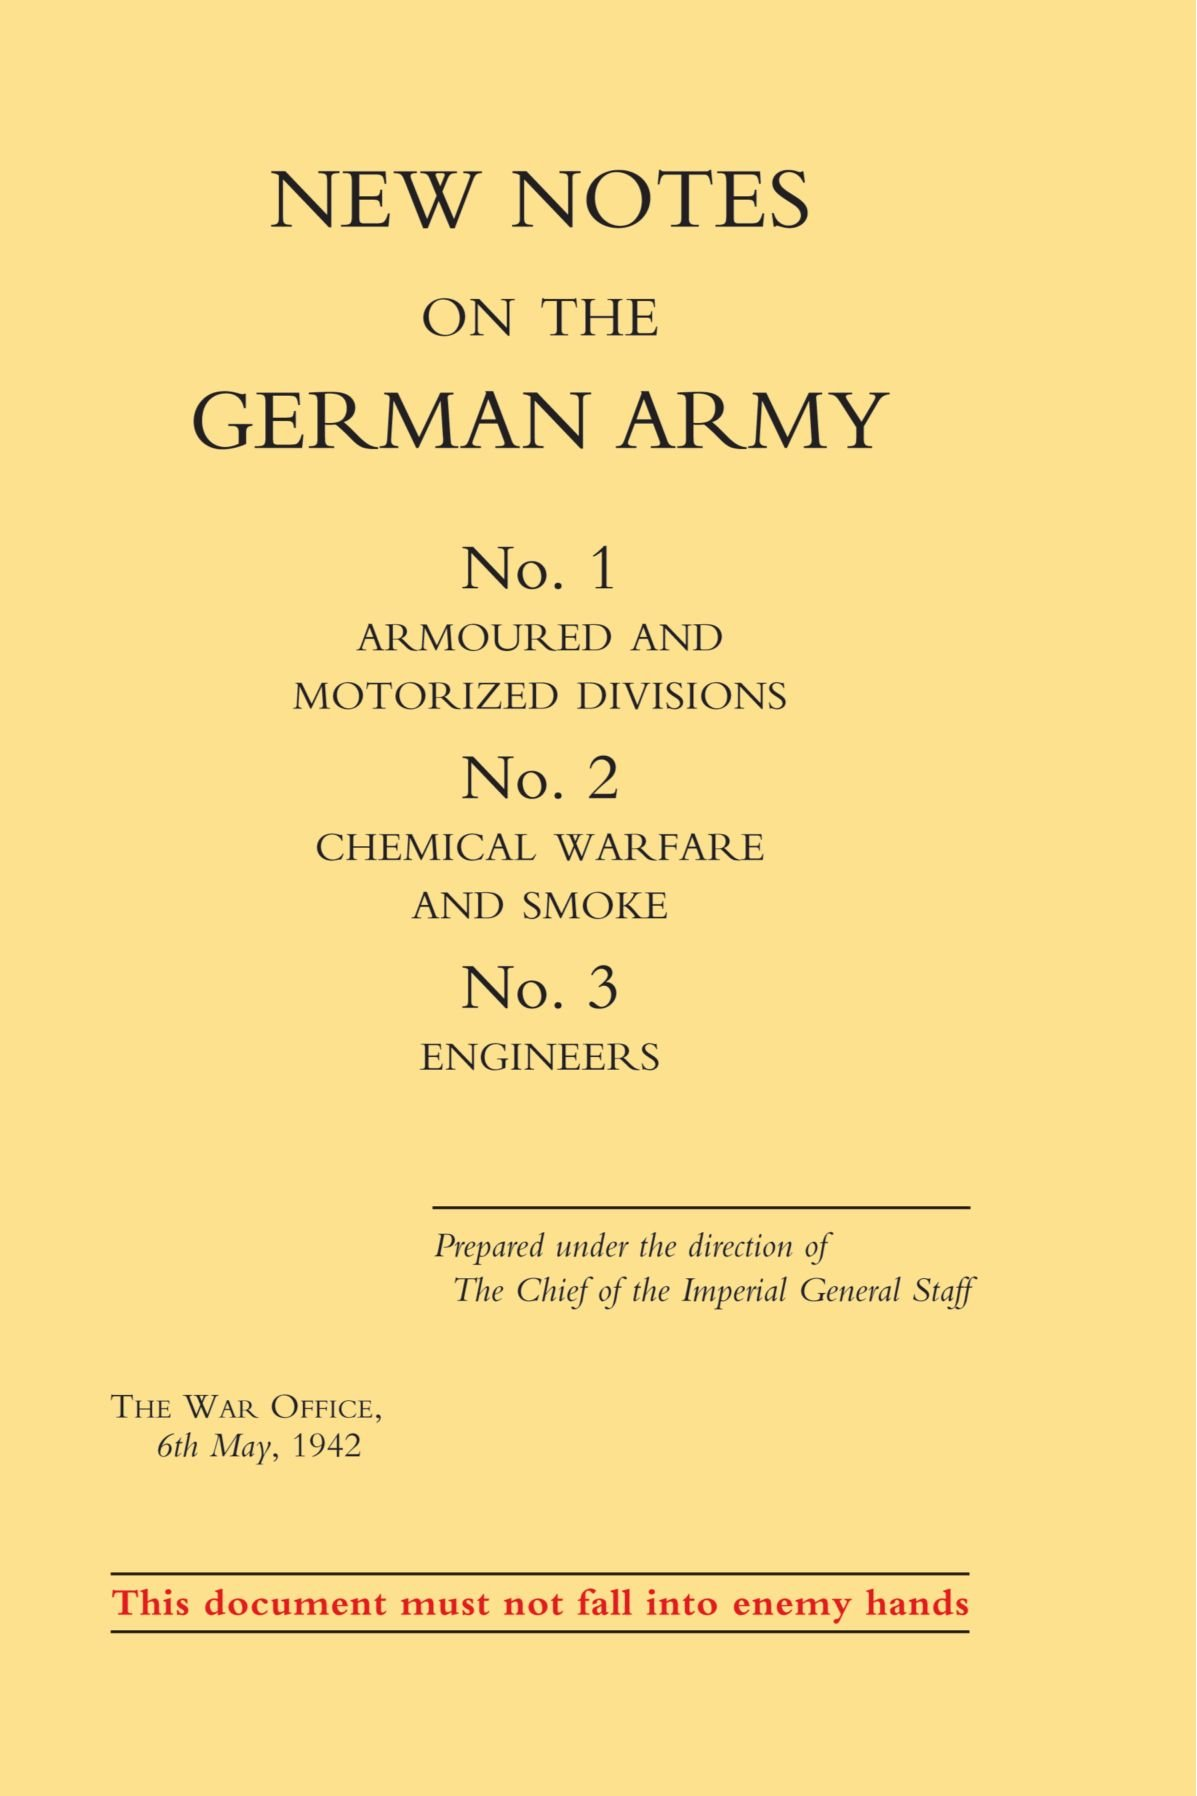 New Notes On The German Army. No.1 Armoured And Motorized Divisions. No.2 Chemical Warfare And Smoke No.3 Engineers.: New Notes On The German Army. ... Chemical Warfare And Smoke No.3 Engineers. PDF